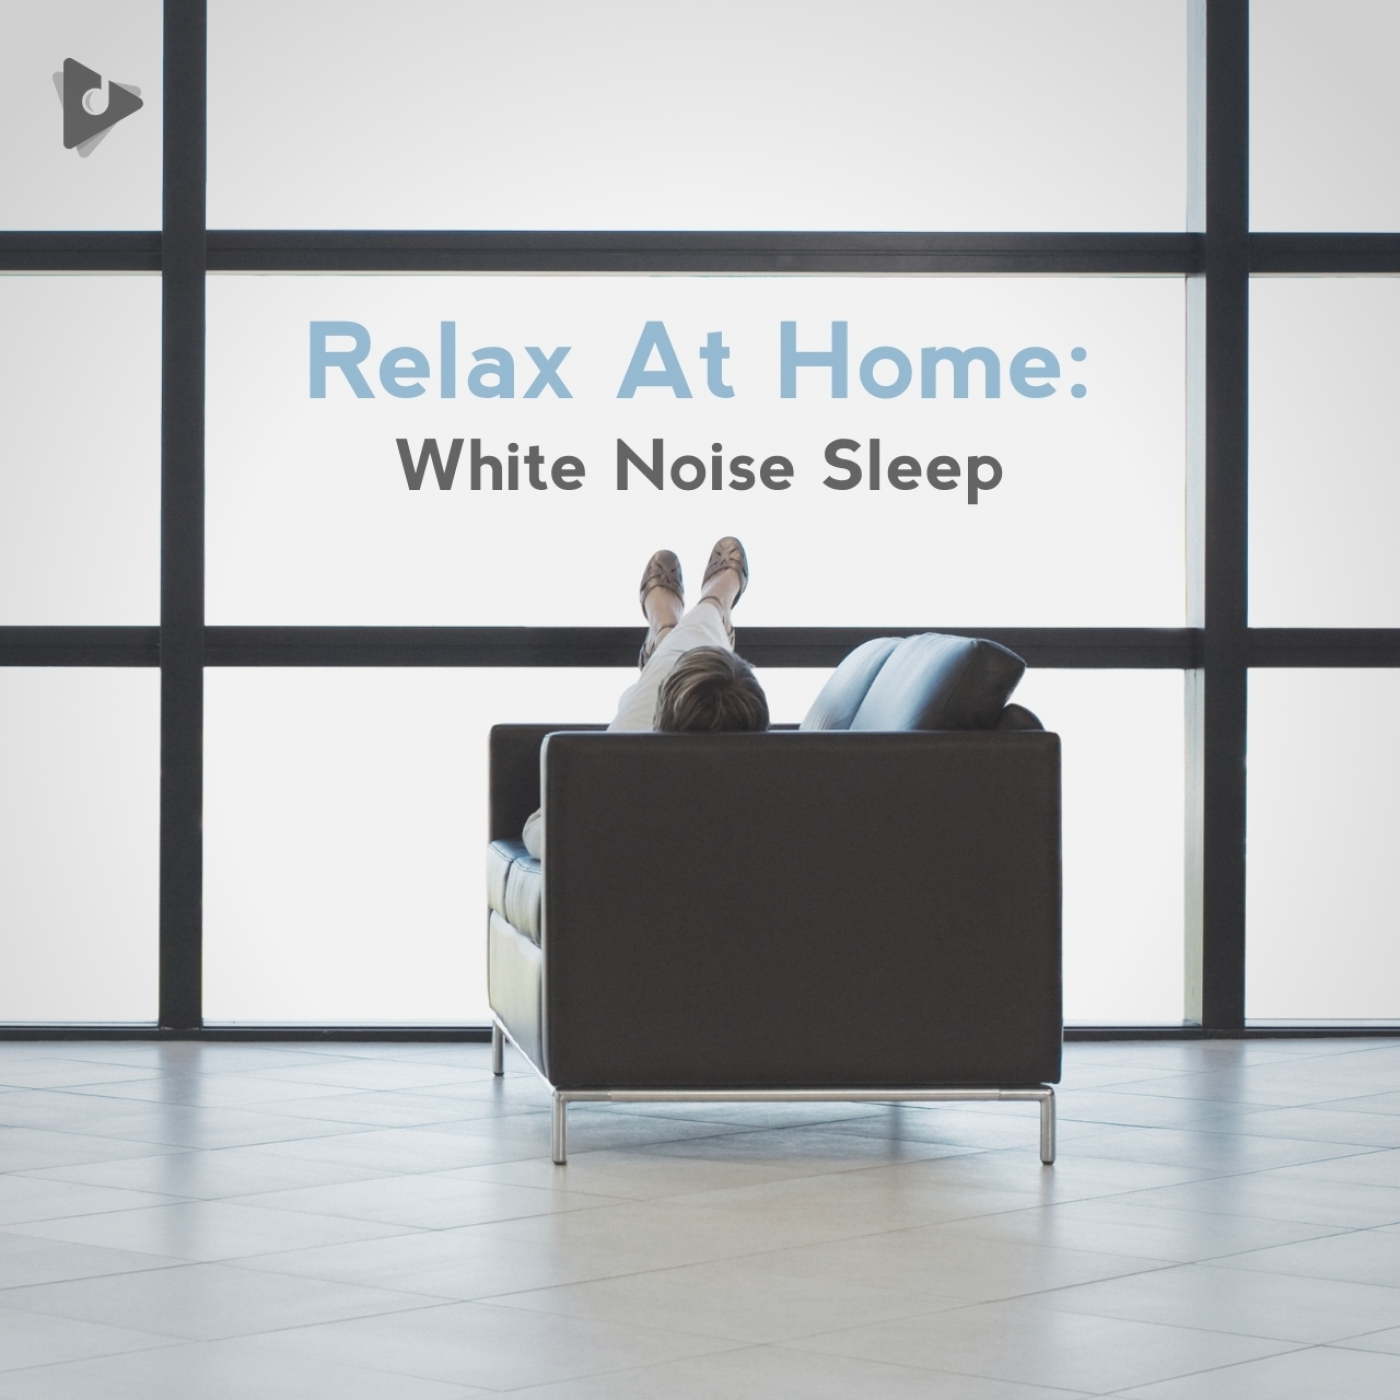 Stay-at-Home: White Noise Sleep